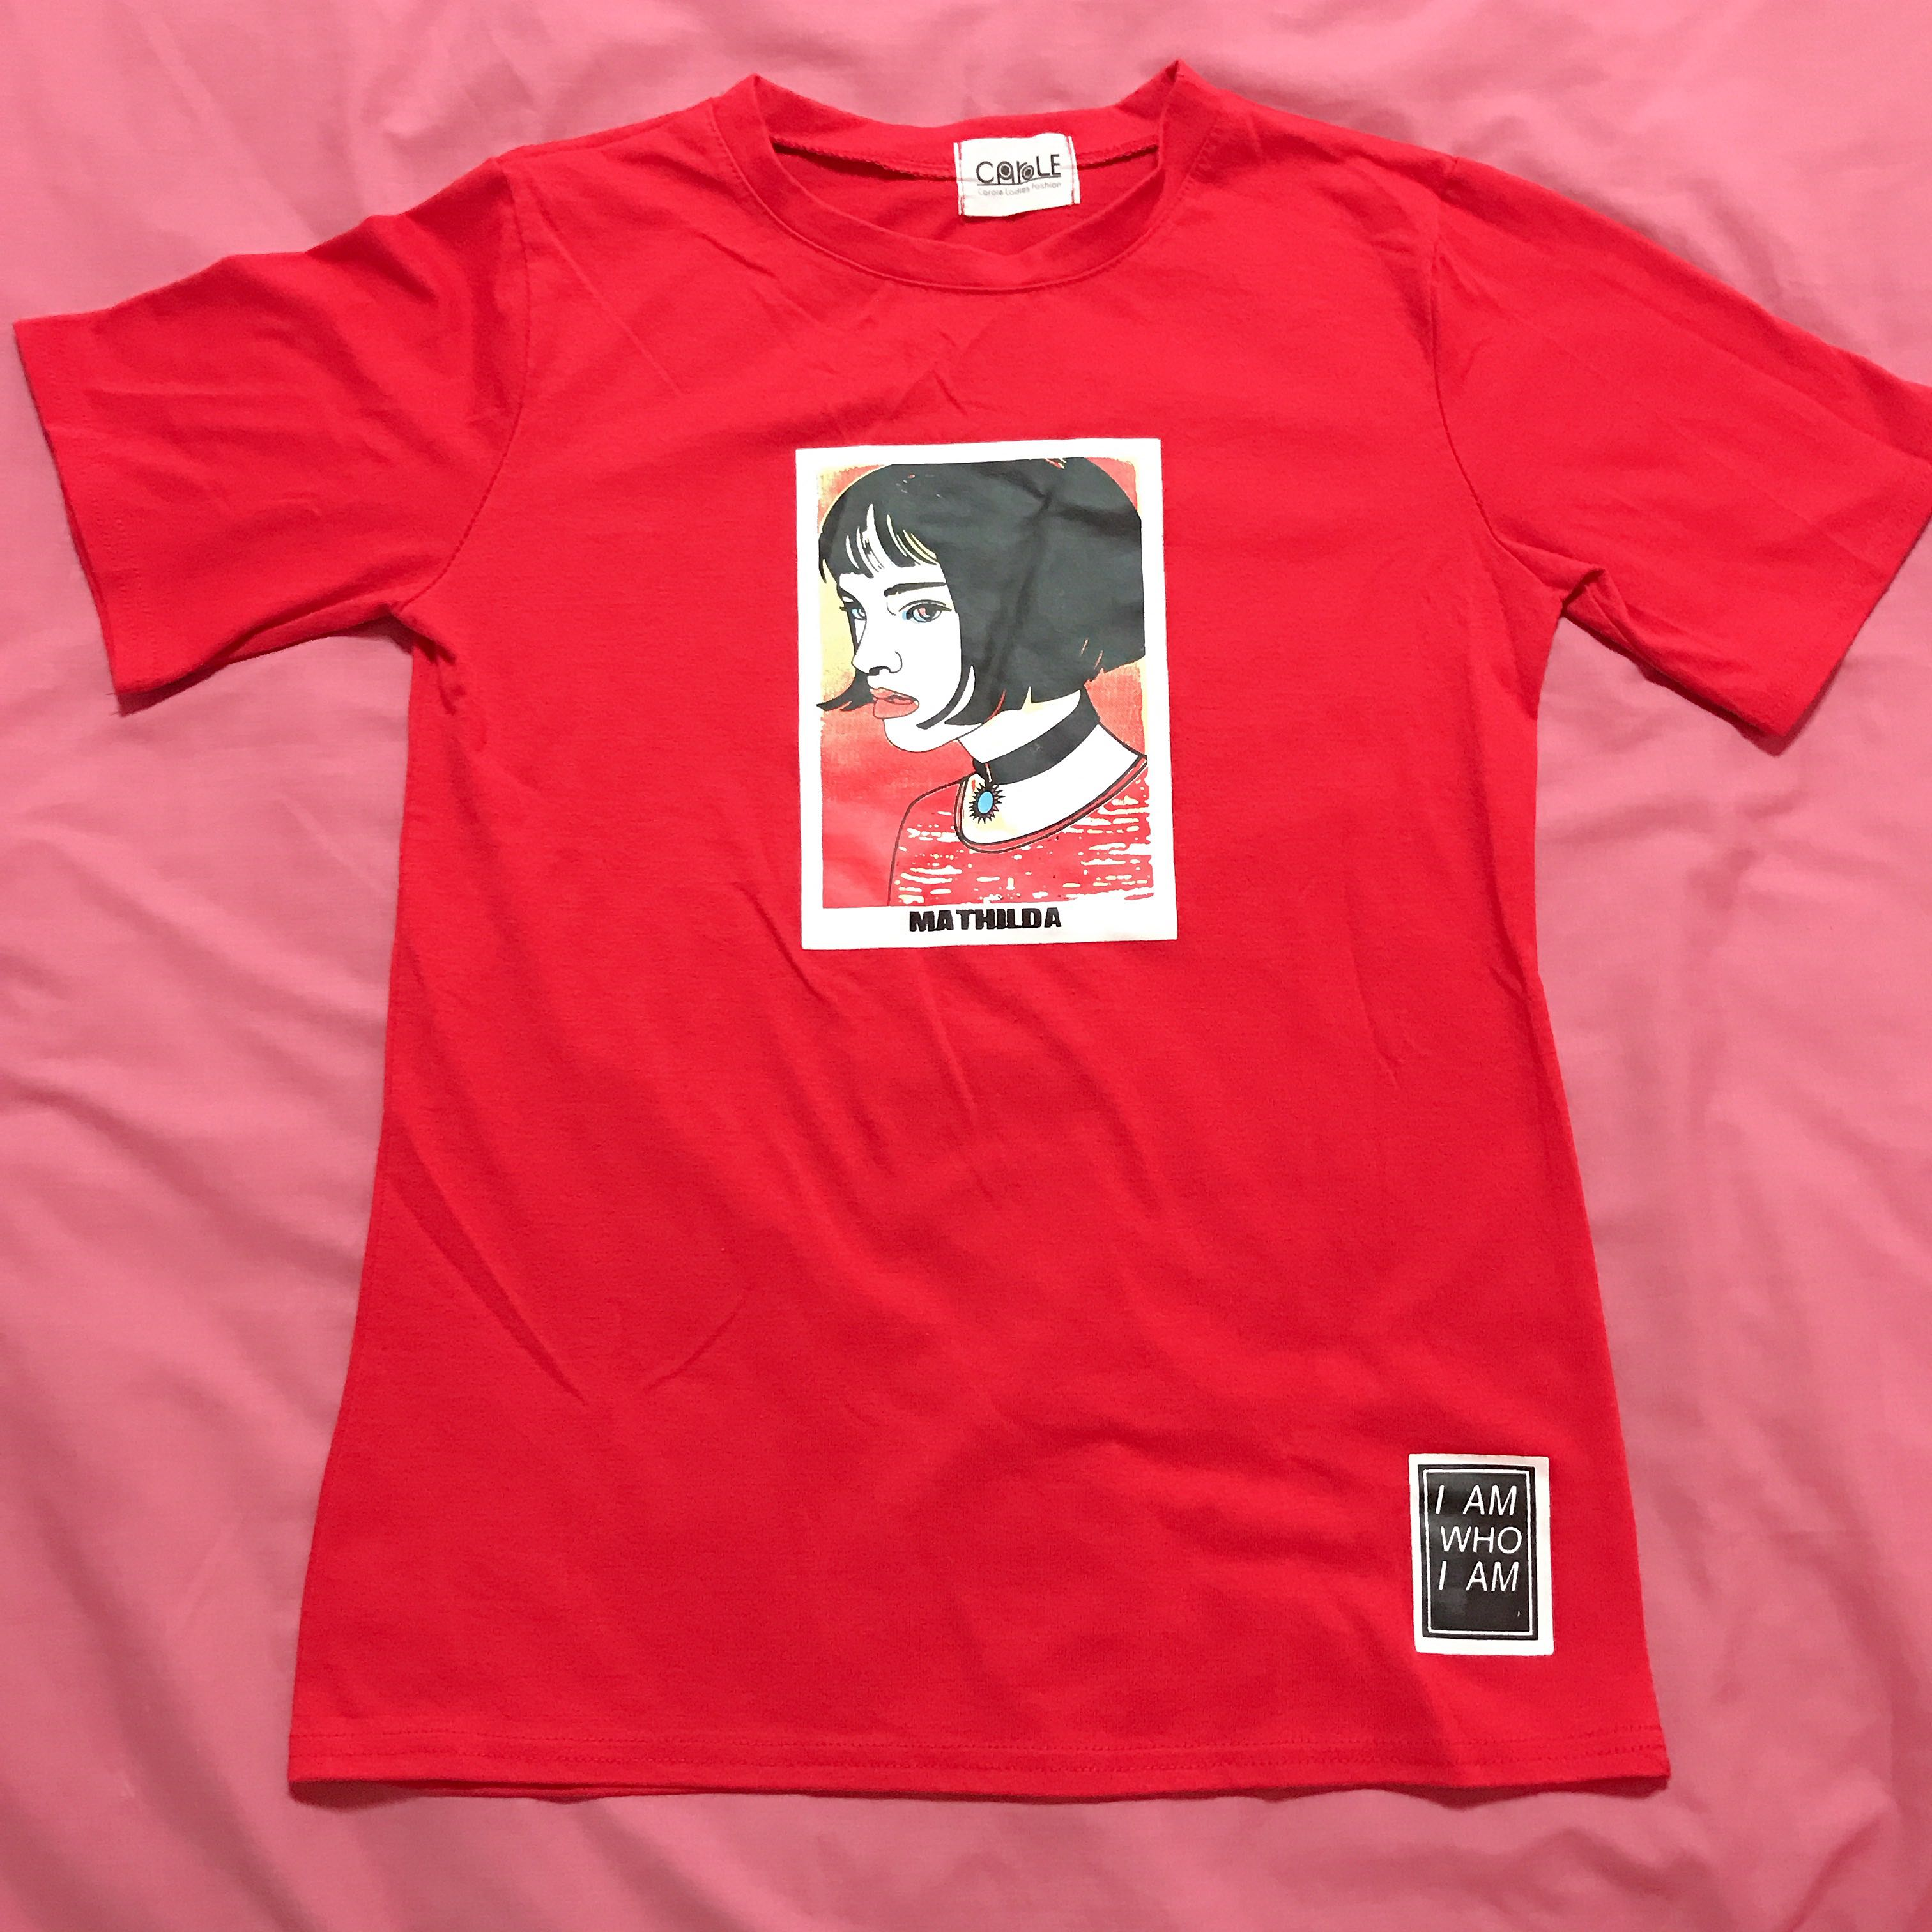 541c1b058 ulzzang red mathilda tee, Women's Fashion, Clothes, Tops on Carousell